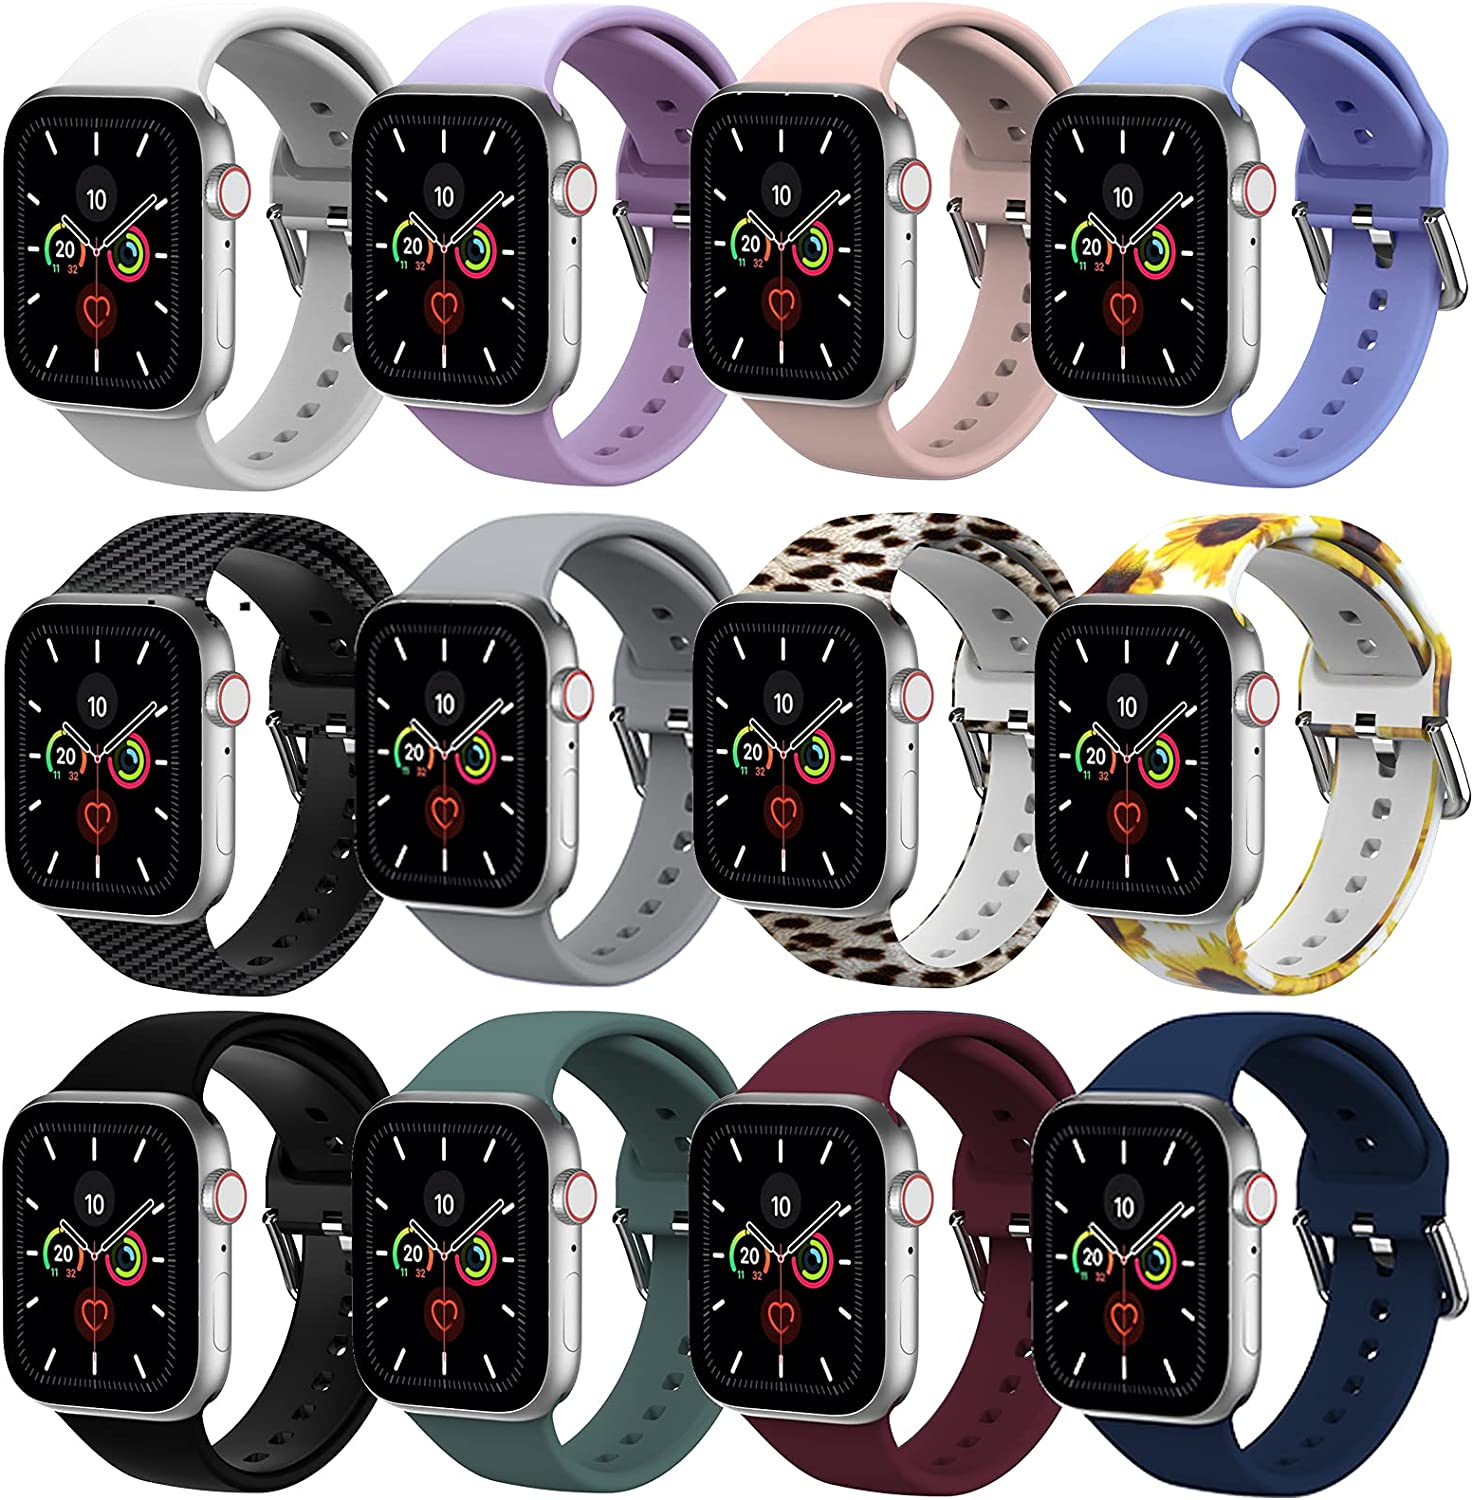 [12Pack] Bands for Apple Watch 38mm 40mm 41mm 42mm 44mm 45mm Men Women, KakuFunny Durable Silicone Replacement Strap Compatible with iWatch Series 7/6/5/4/3/2/1/SE (42mm/44mm/45mm)